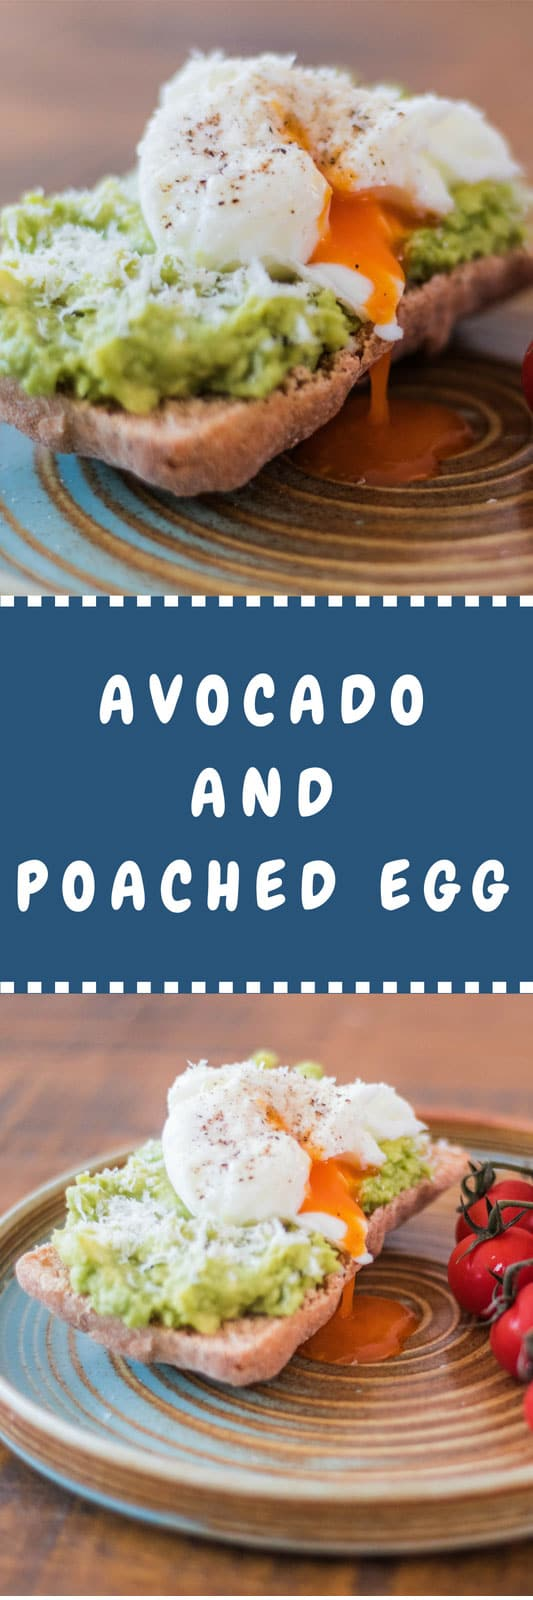 Avocado and egg make the perfect combination, even more so when that yummy golden yolk pours into the avocado. The great thing about this recipe is that its not only easy to make, its quick and tastes excellent.